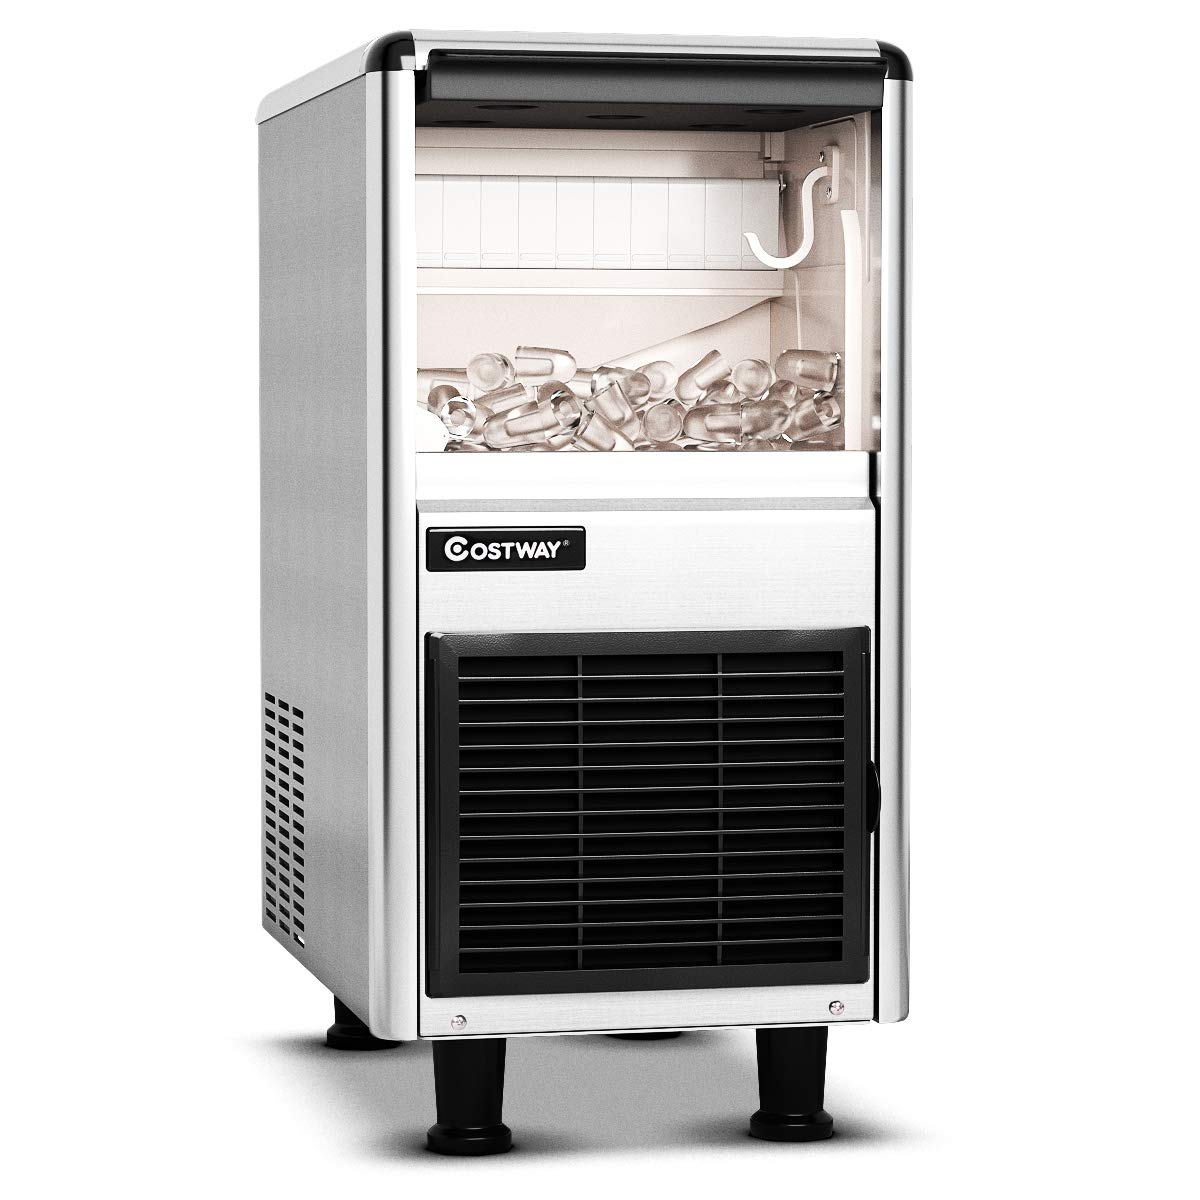 COSTWAY Commercial Ice Machine, 110LBS/24H Stainless Steel Ice Maker with 33LBS Storage Capacity, LCD Display, High efficient Compressor, Free-Standing Design for Restaurant, Bar and Coffee Shop